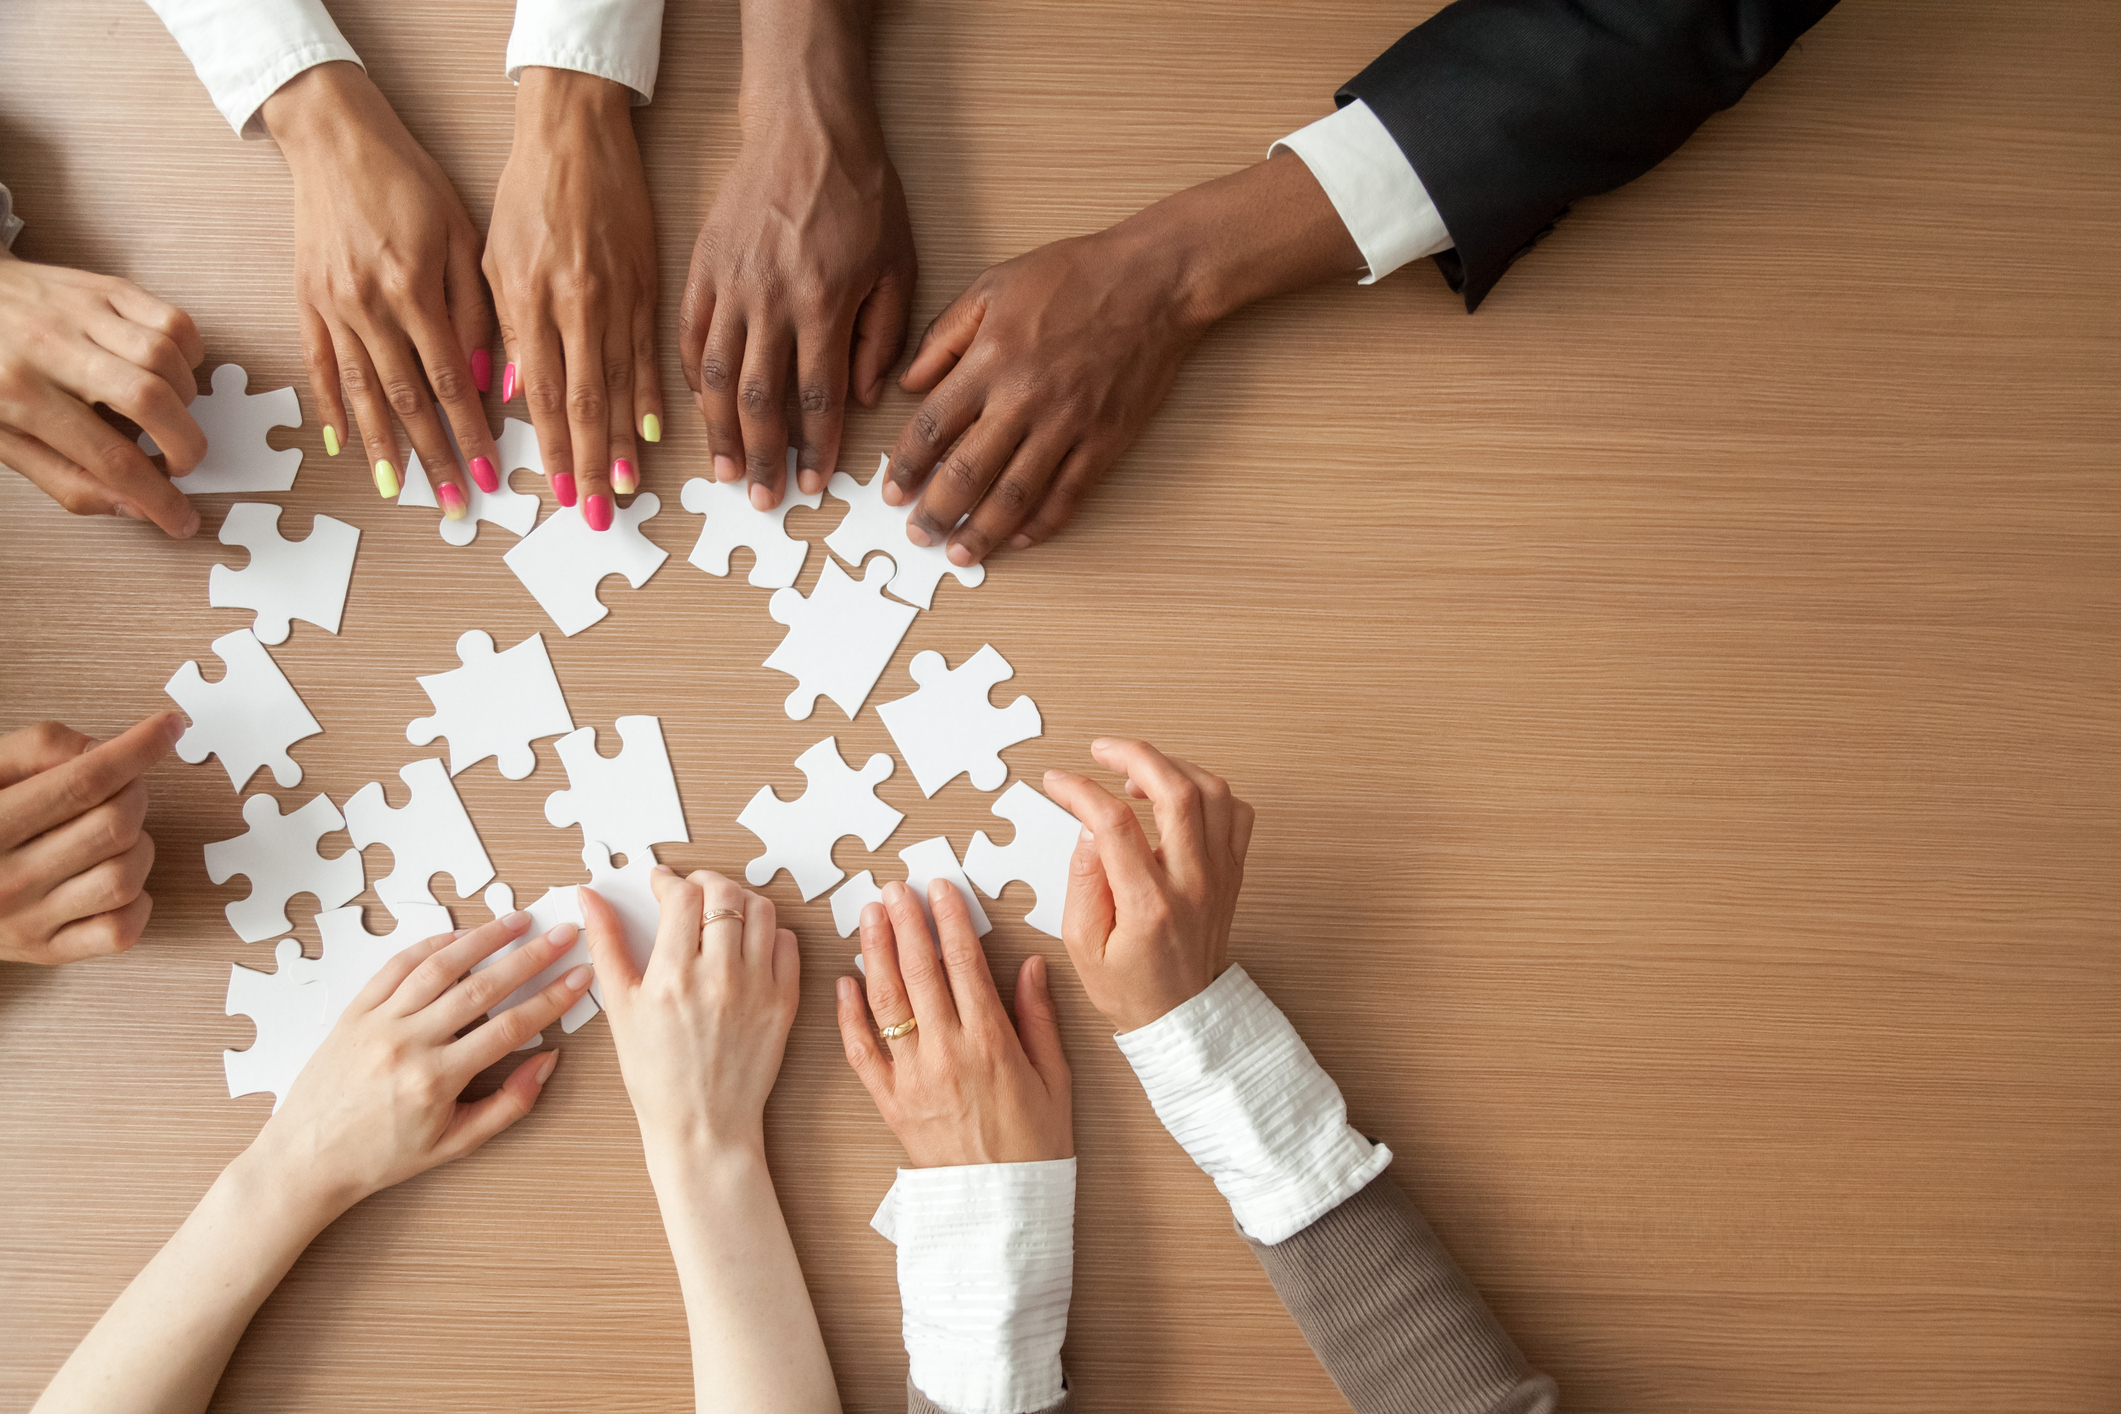 Stock photo of a business team putting a puzzle together